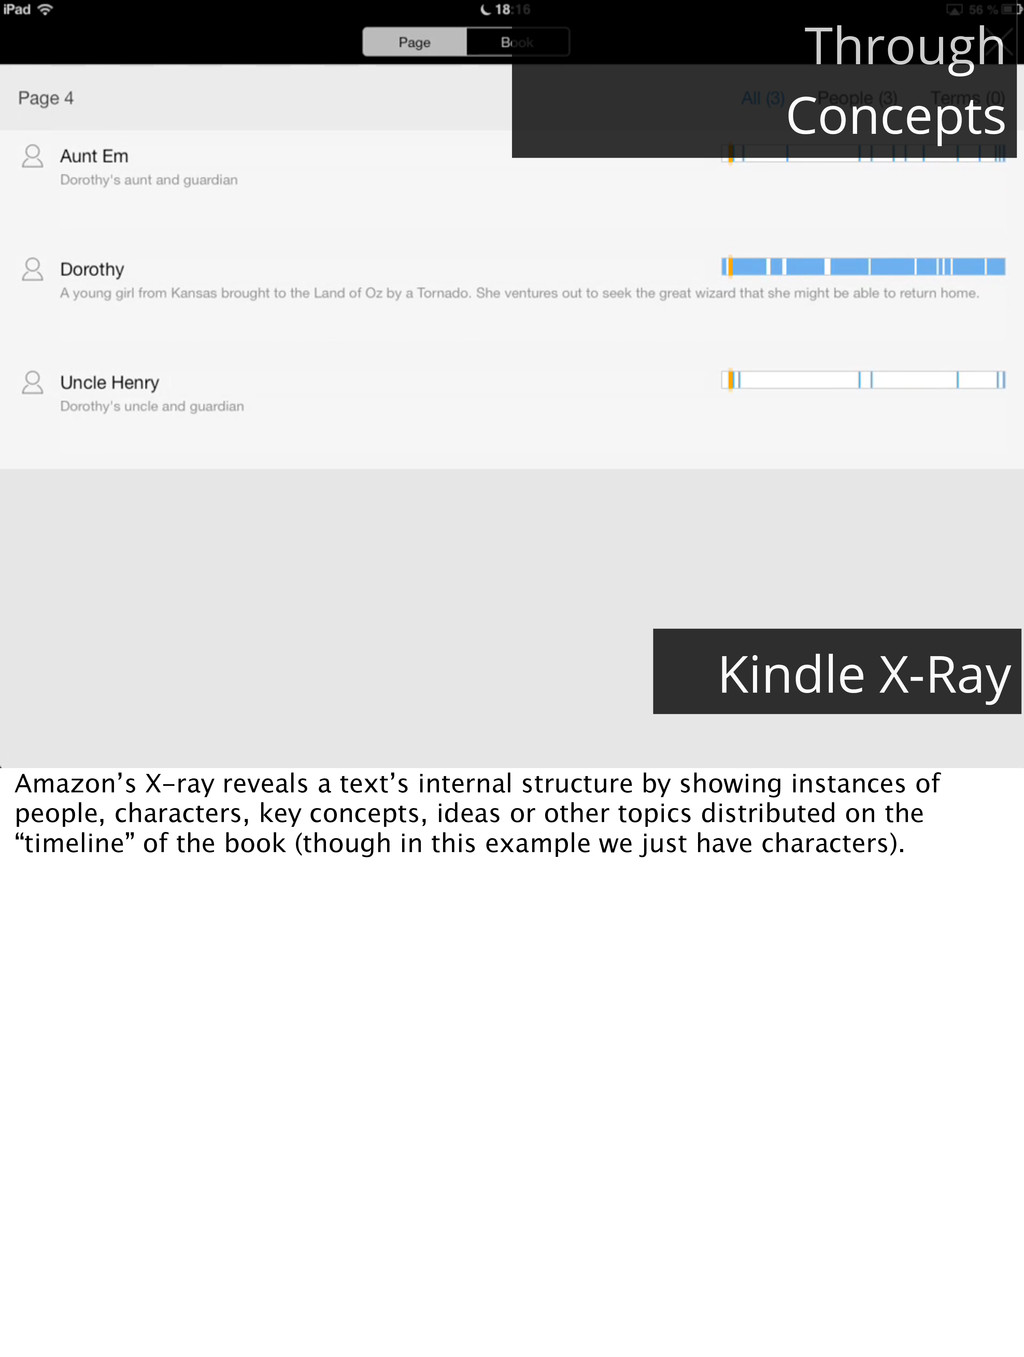 Through Concepts Kindle X-Ray Amazon's X-ray re...